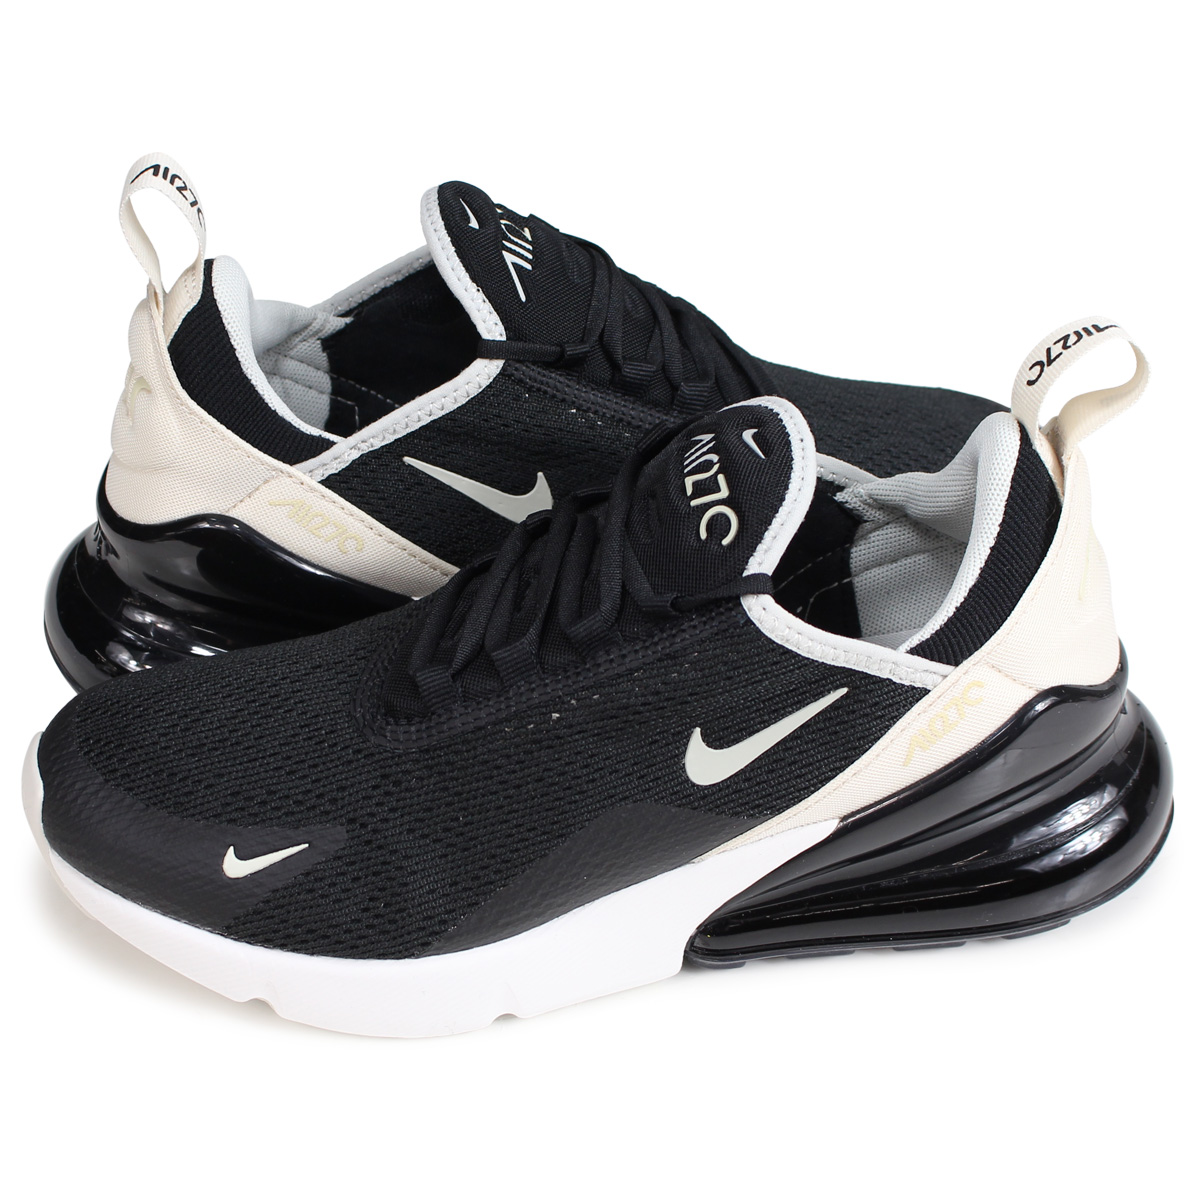 Nike NIKE Air Max 270 sneakers Lady's WMNS AIR MAX 270 black AH6789 010 [load planned Shinnyu load in reservation product 213 containing]